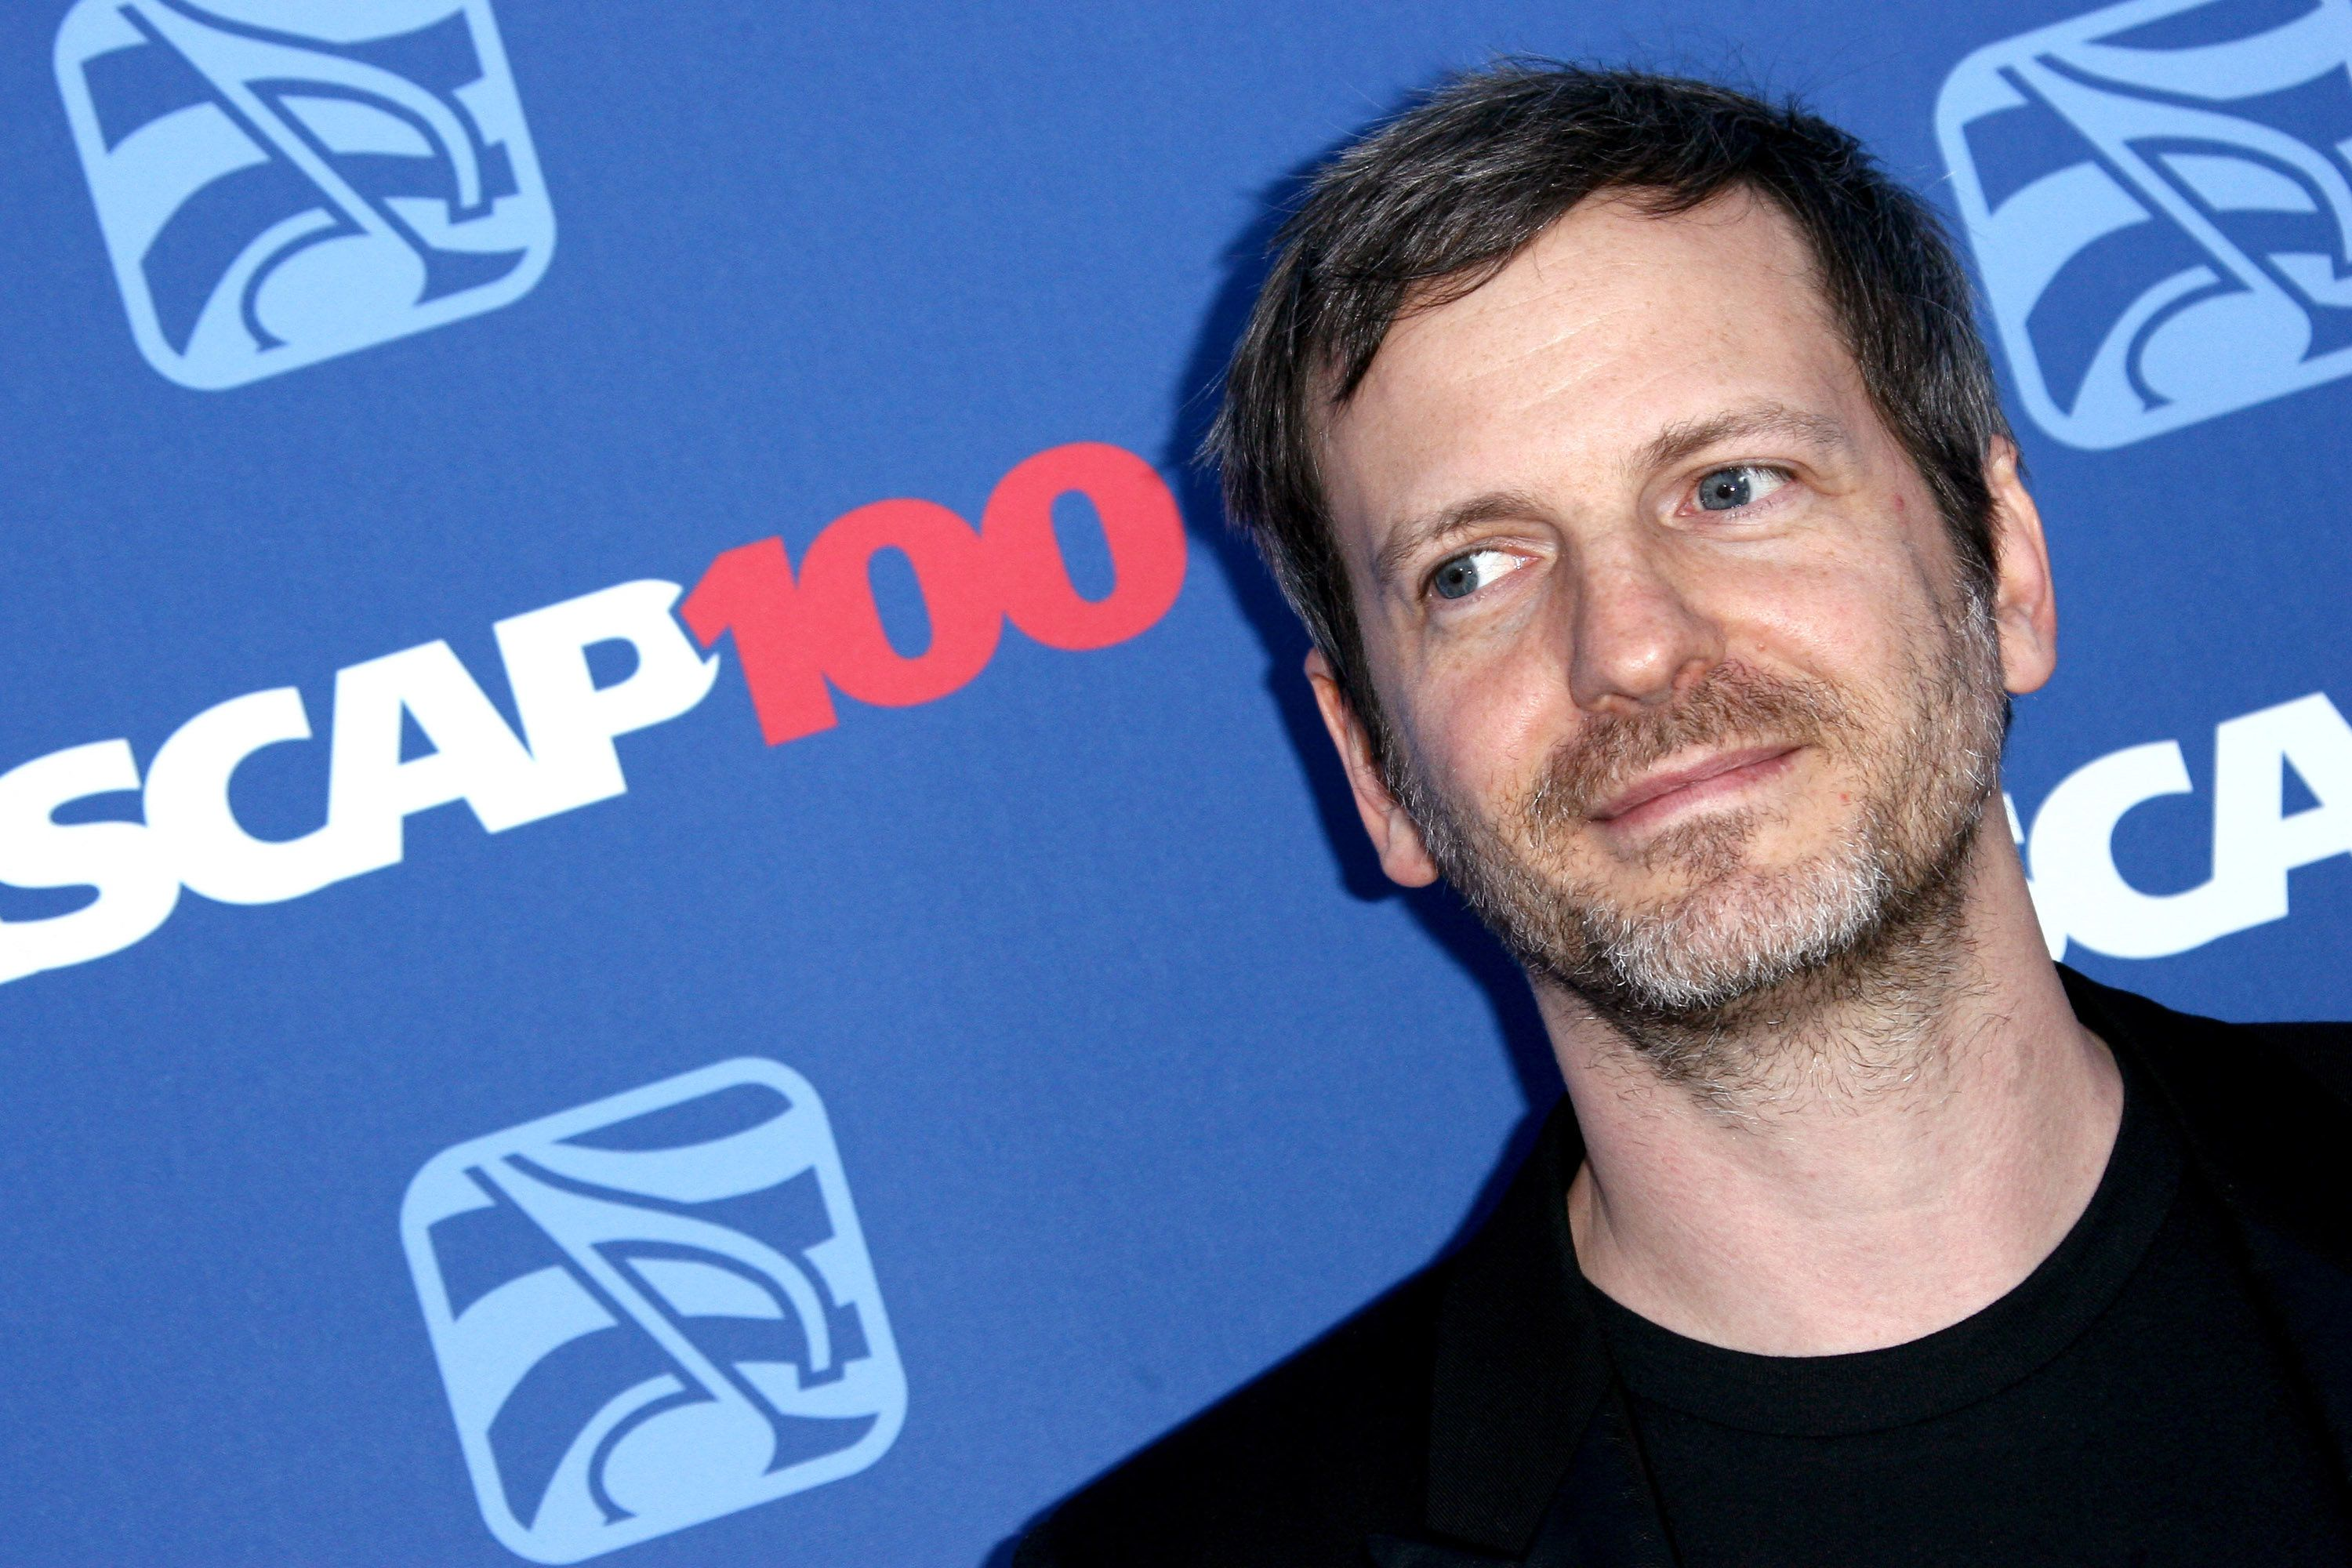 HOLLYWOOD, CA - APRIL 23:  Lukasz Gottwald aka Dr. Luke attends the 2014 ASCAP Pop Awards held at the Lowes Hollywood Hotel on April 23, 2014 in Hollywood, California.  (Photo by Tommaso Boddi/WireImage)